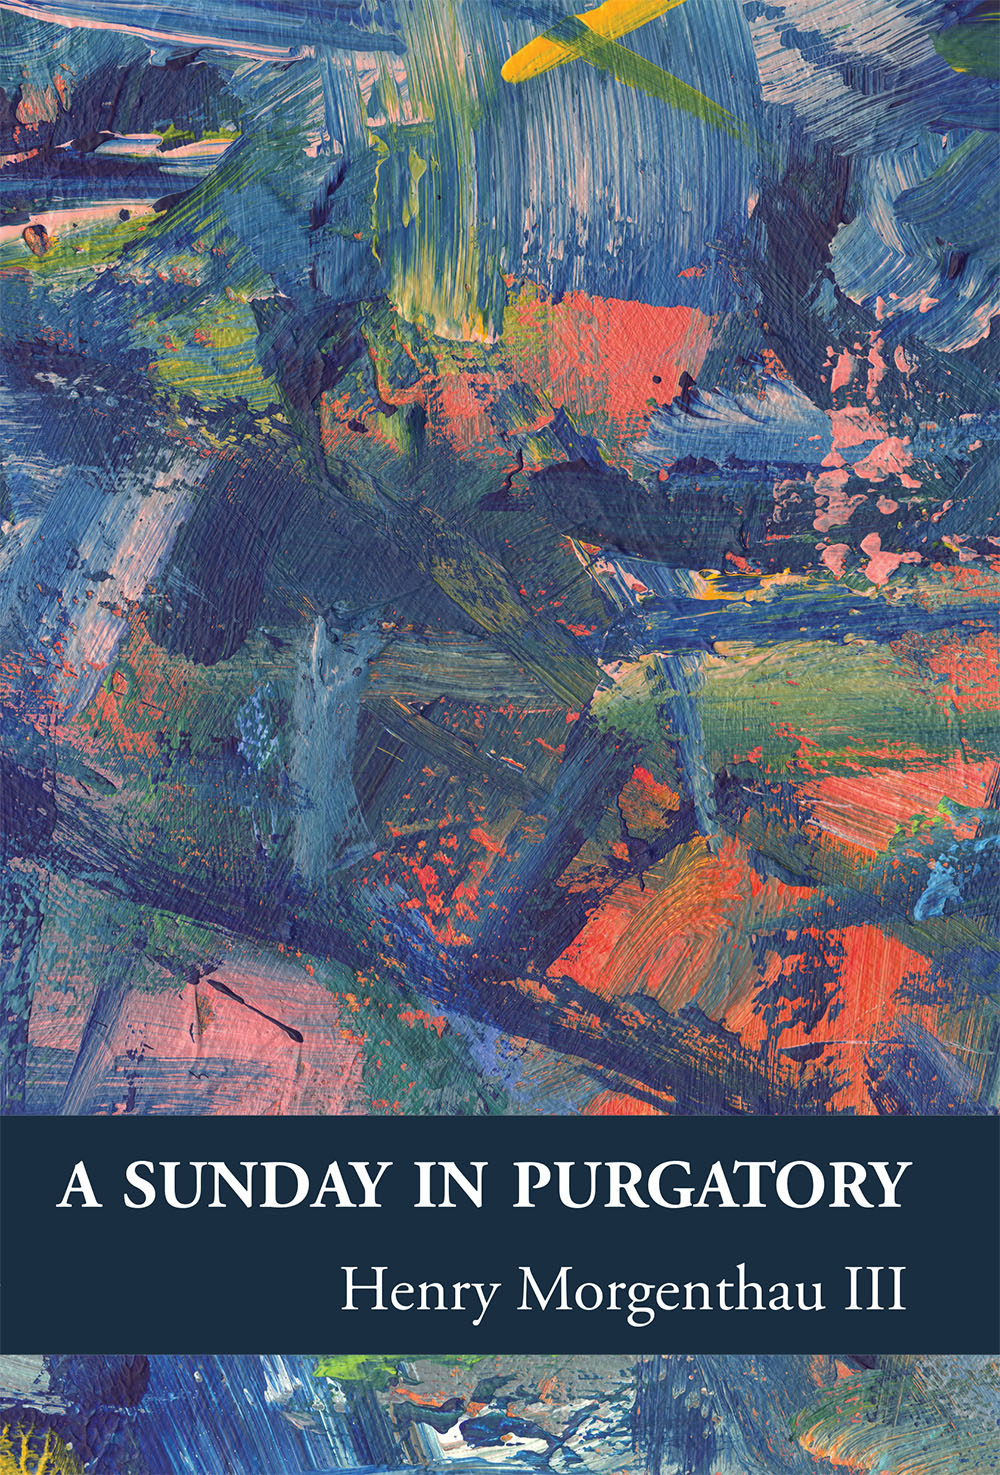 A Sunday in Purgatory